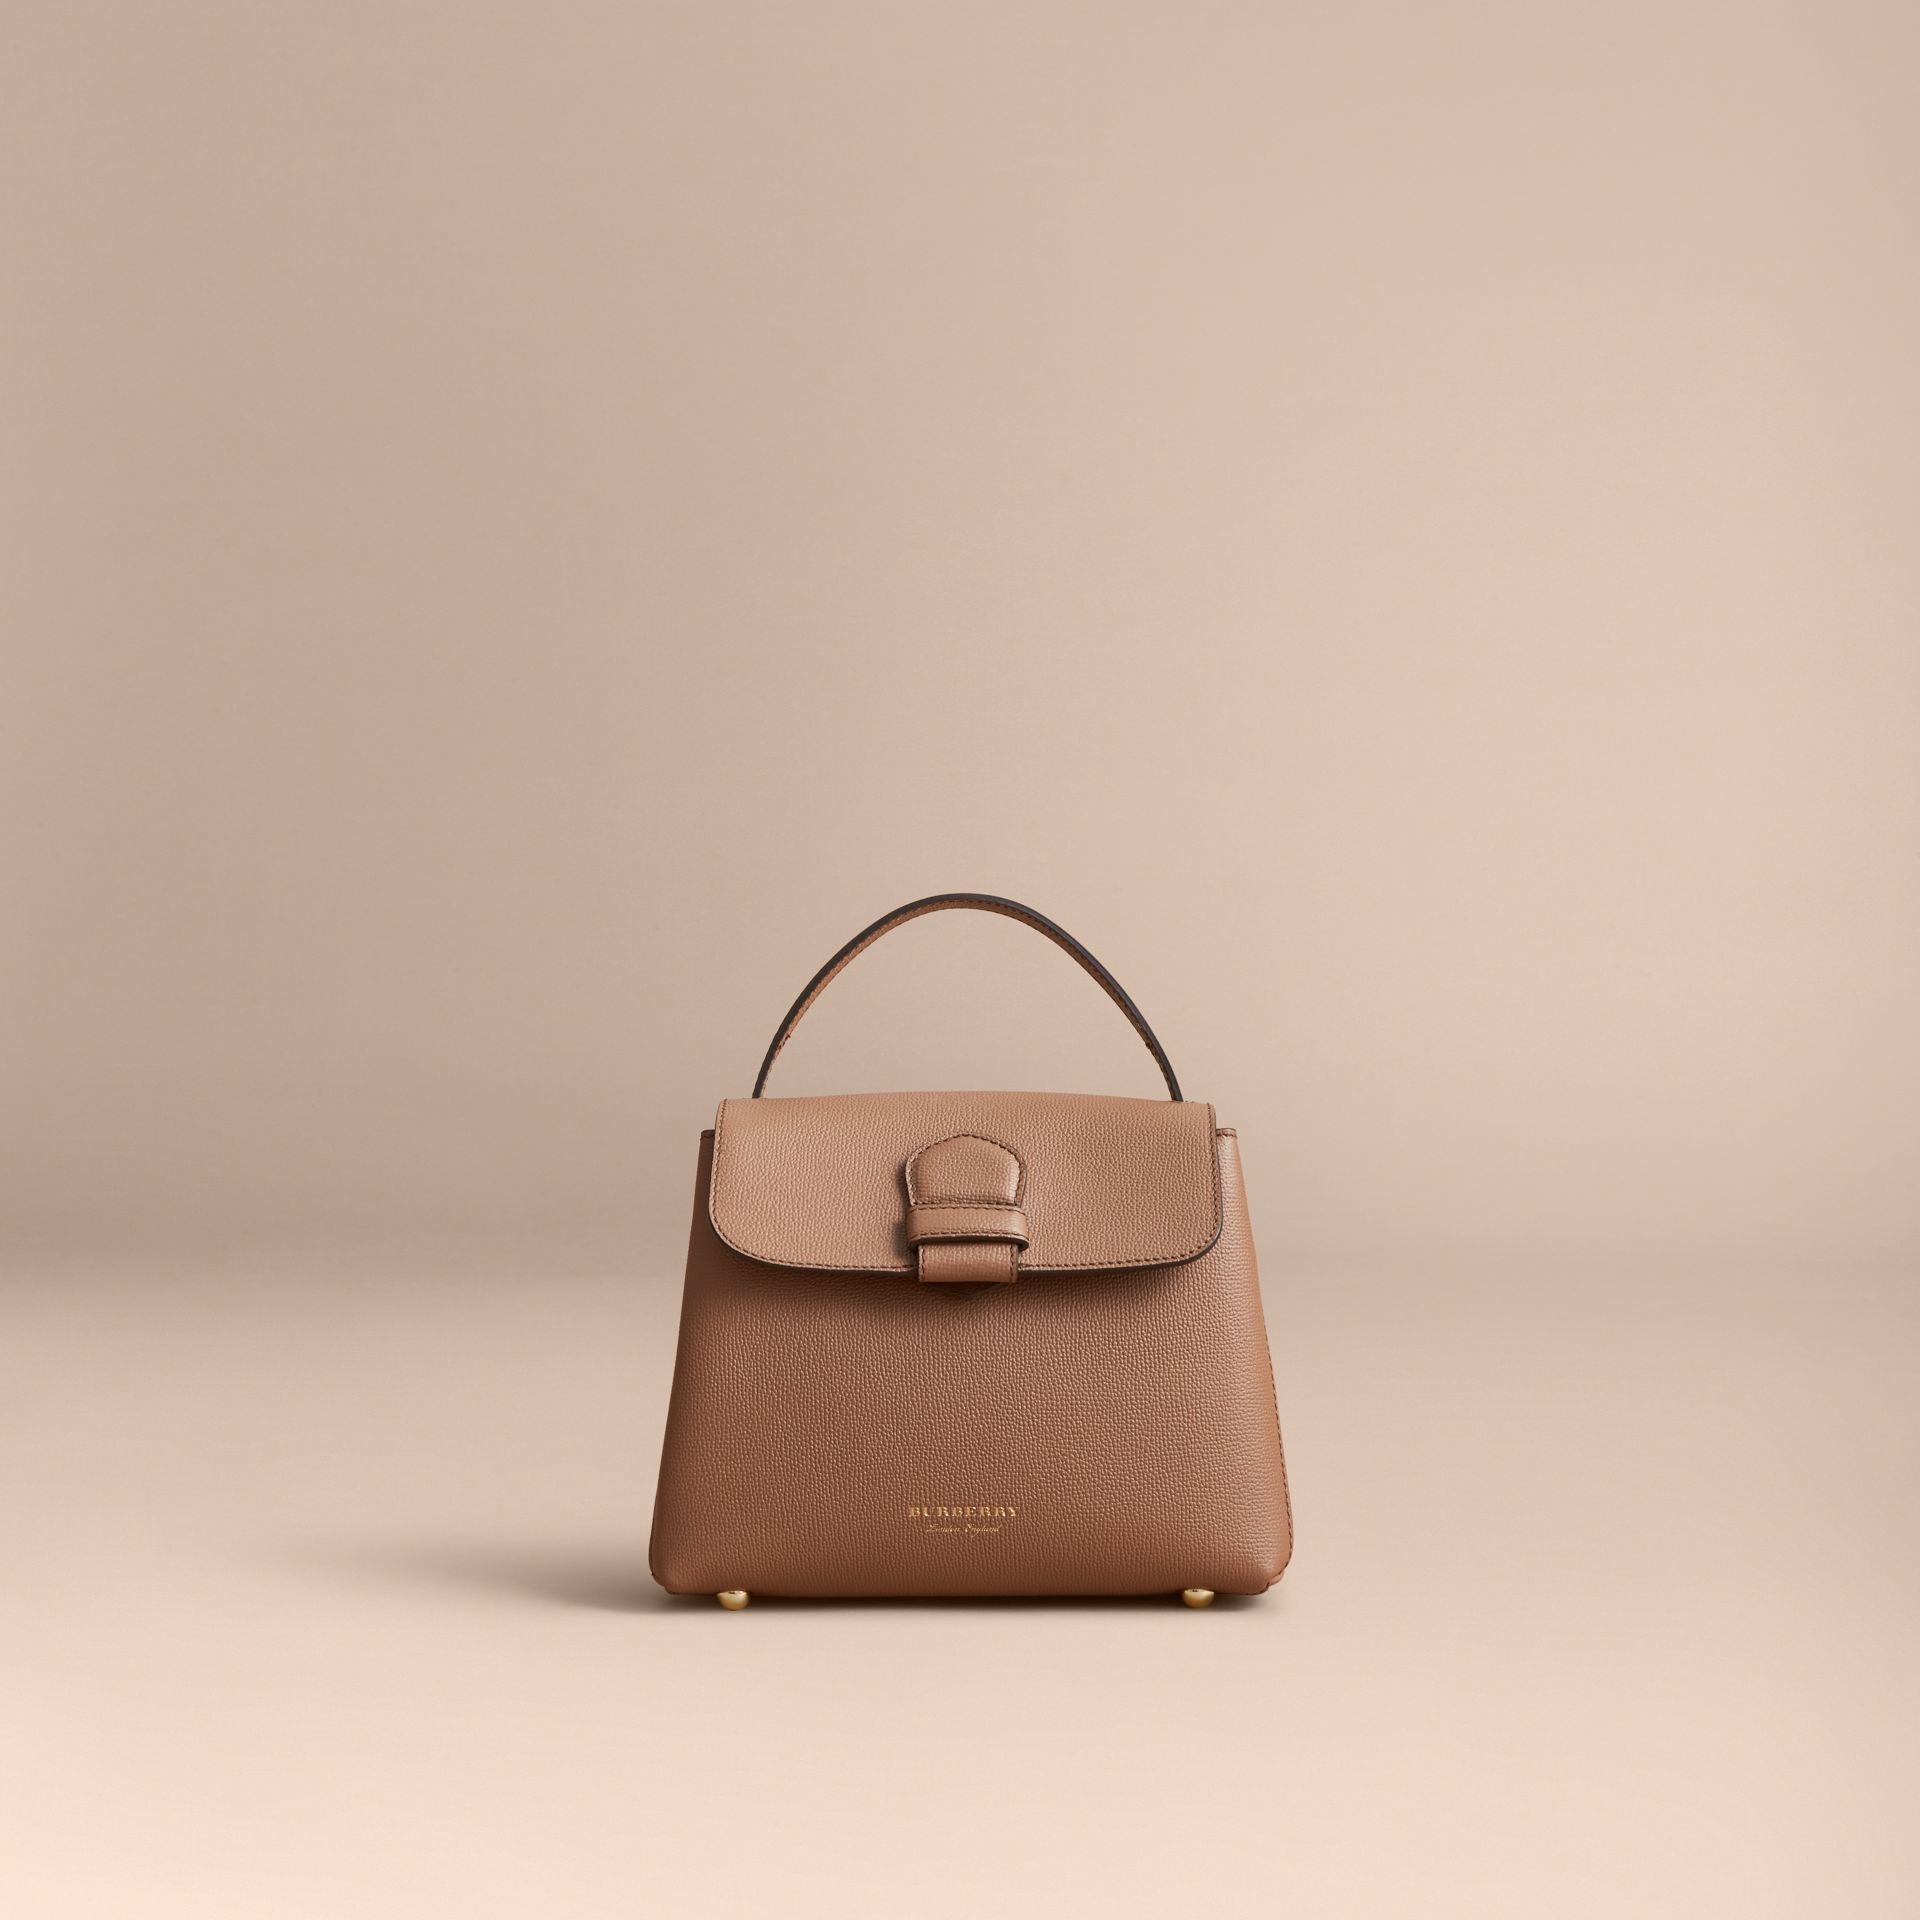 Small Grainy Leather and House Check Tote Bag in Dark Sand - Women | Burberry Hong Kong - gallery image 6